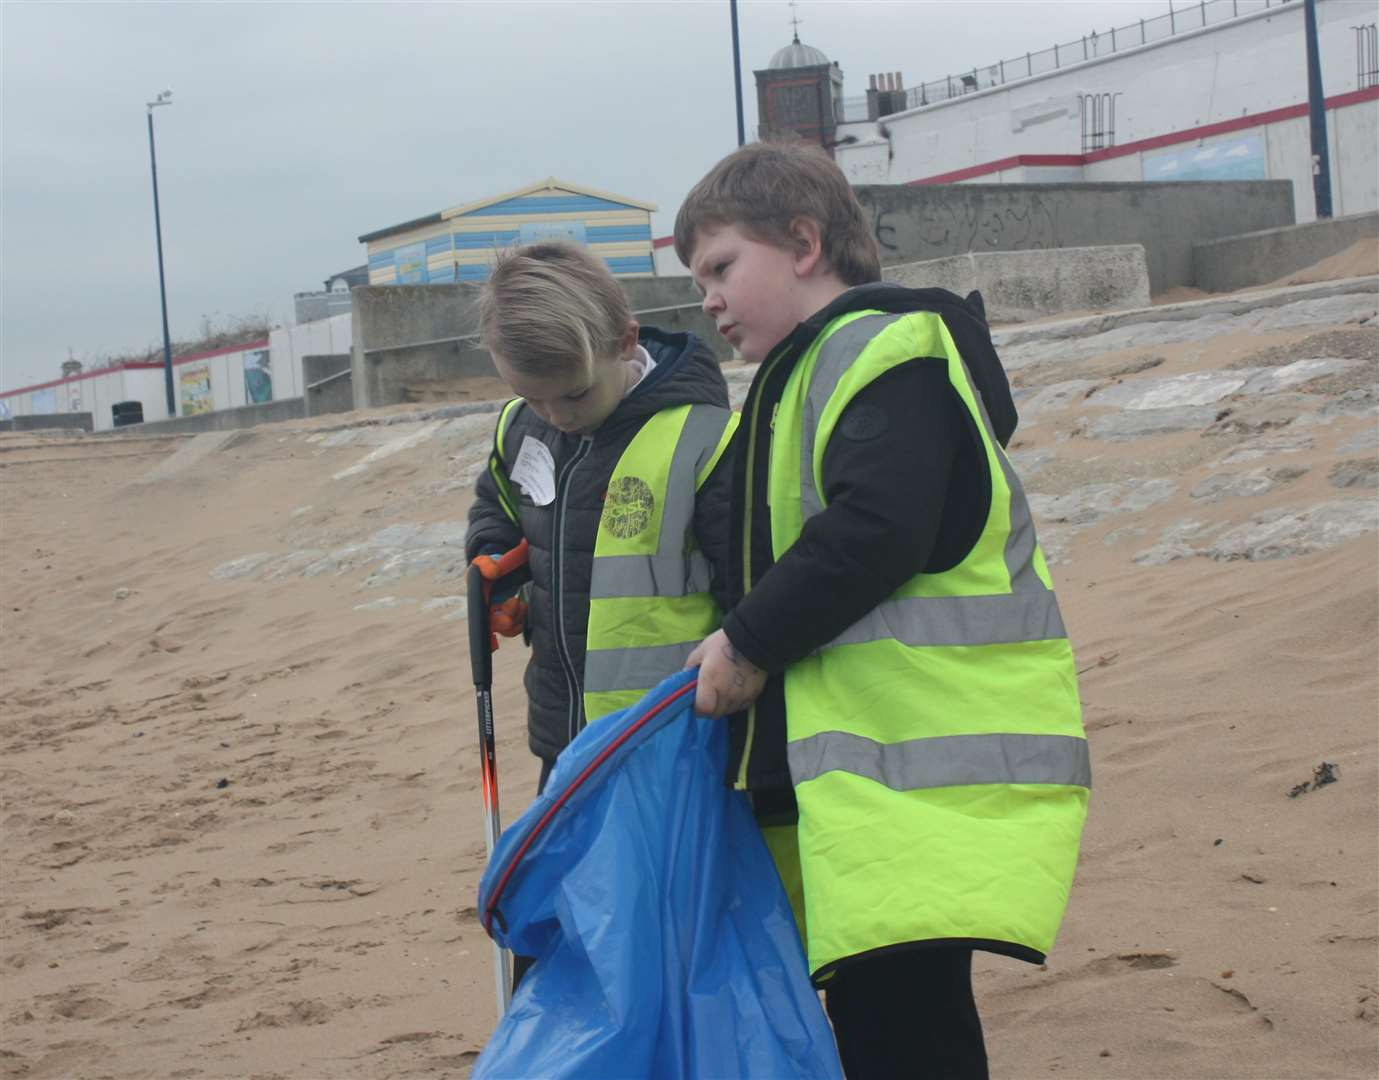 Youngsters cleaning a beach in Thanet last year